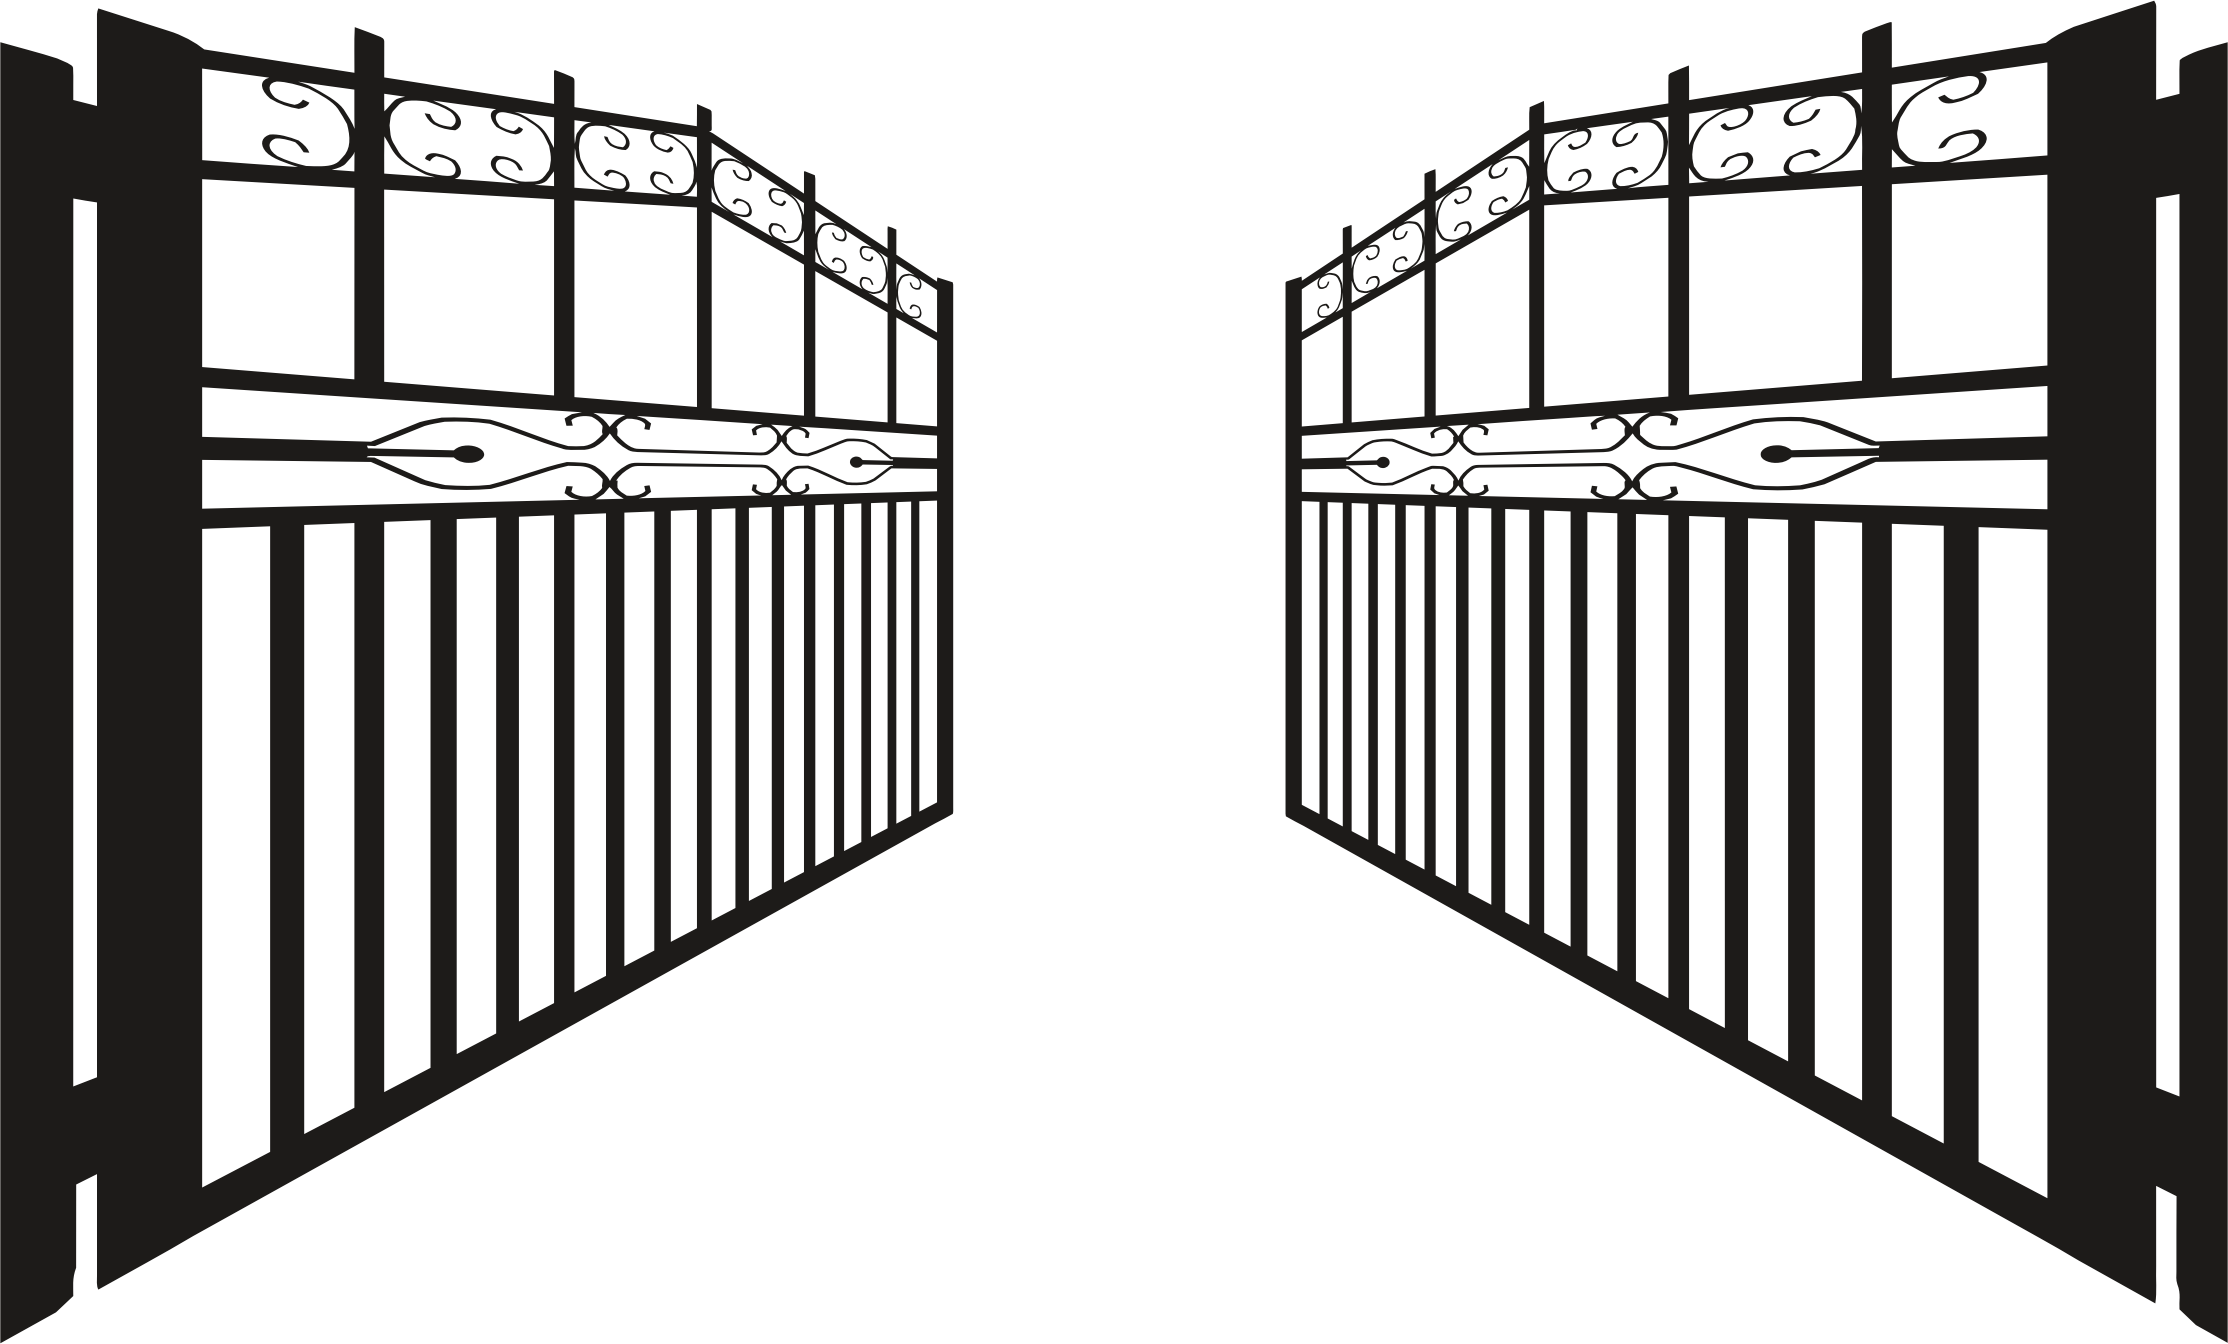 Gate png. Open transparent images pluspng